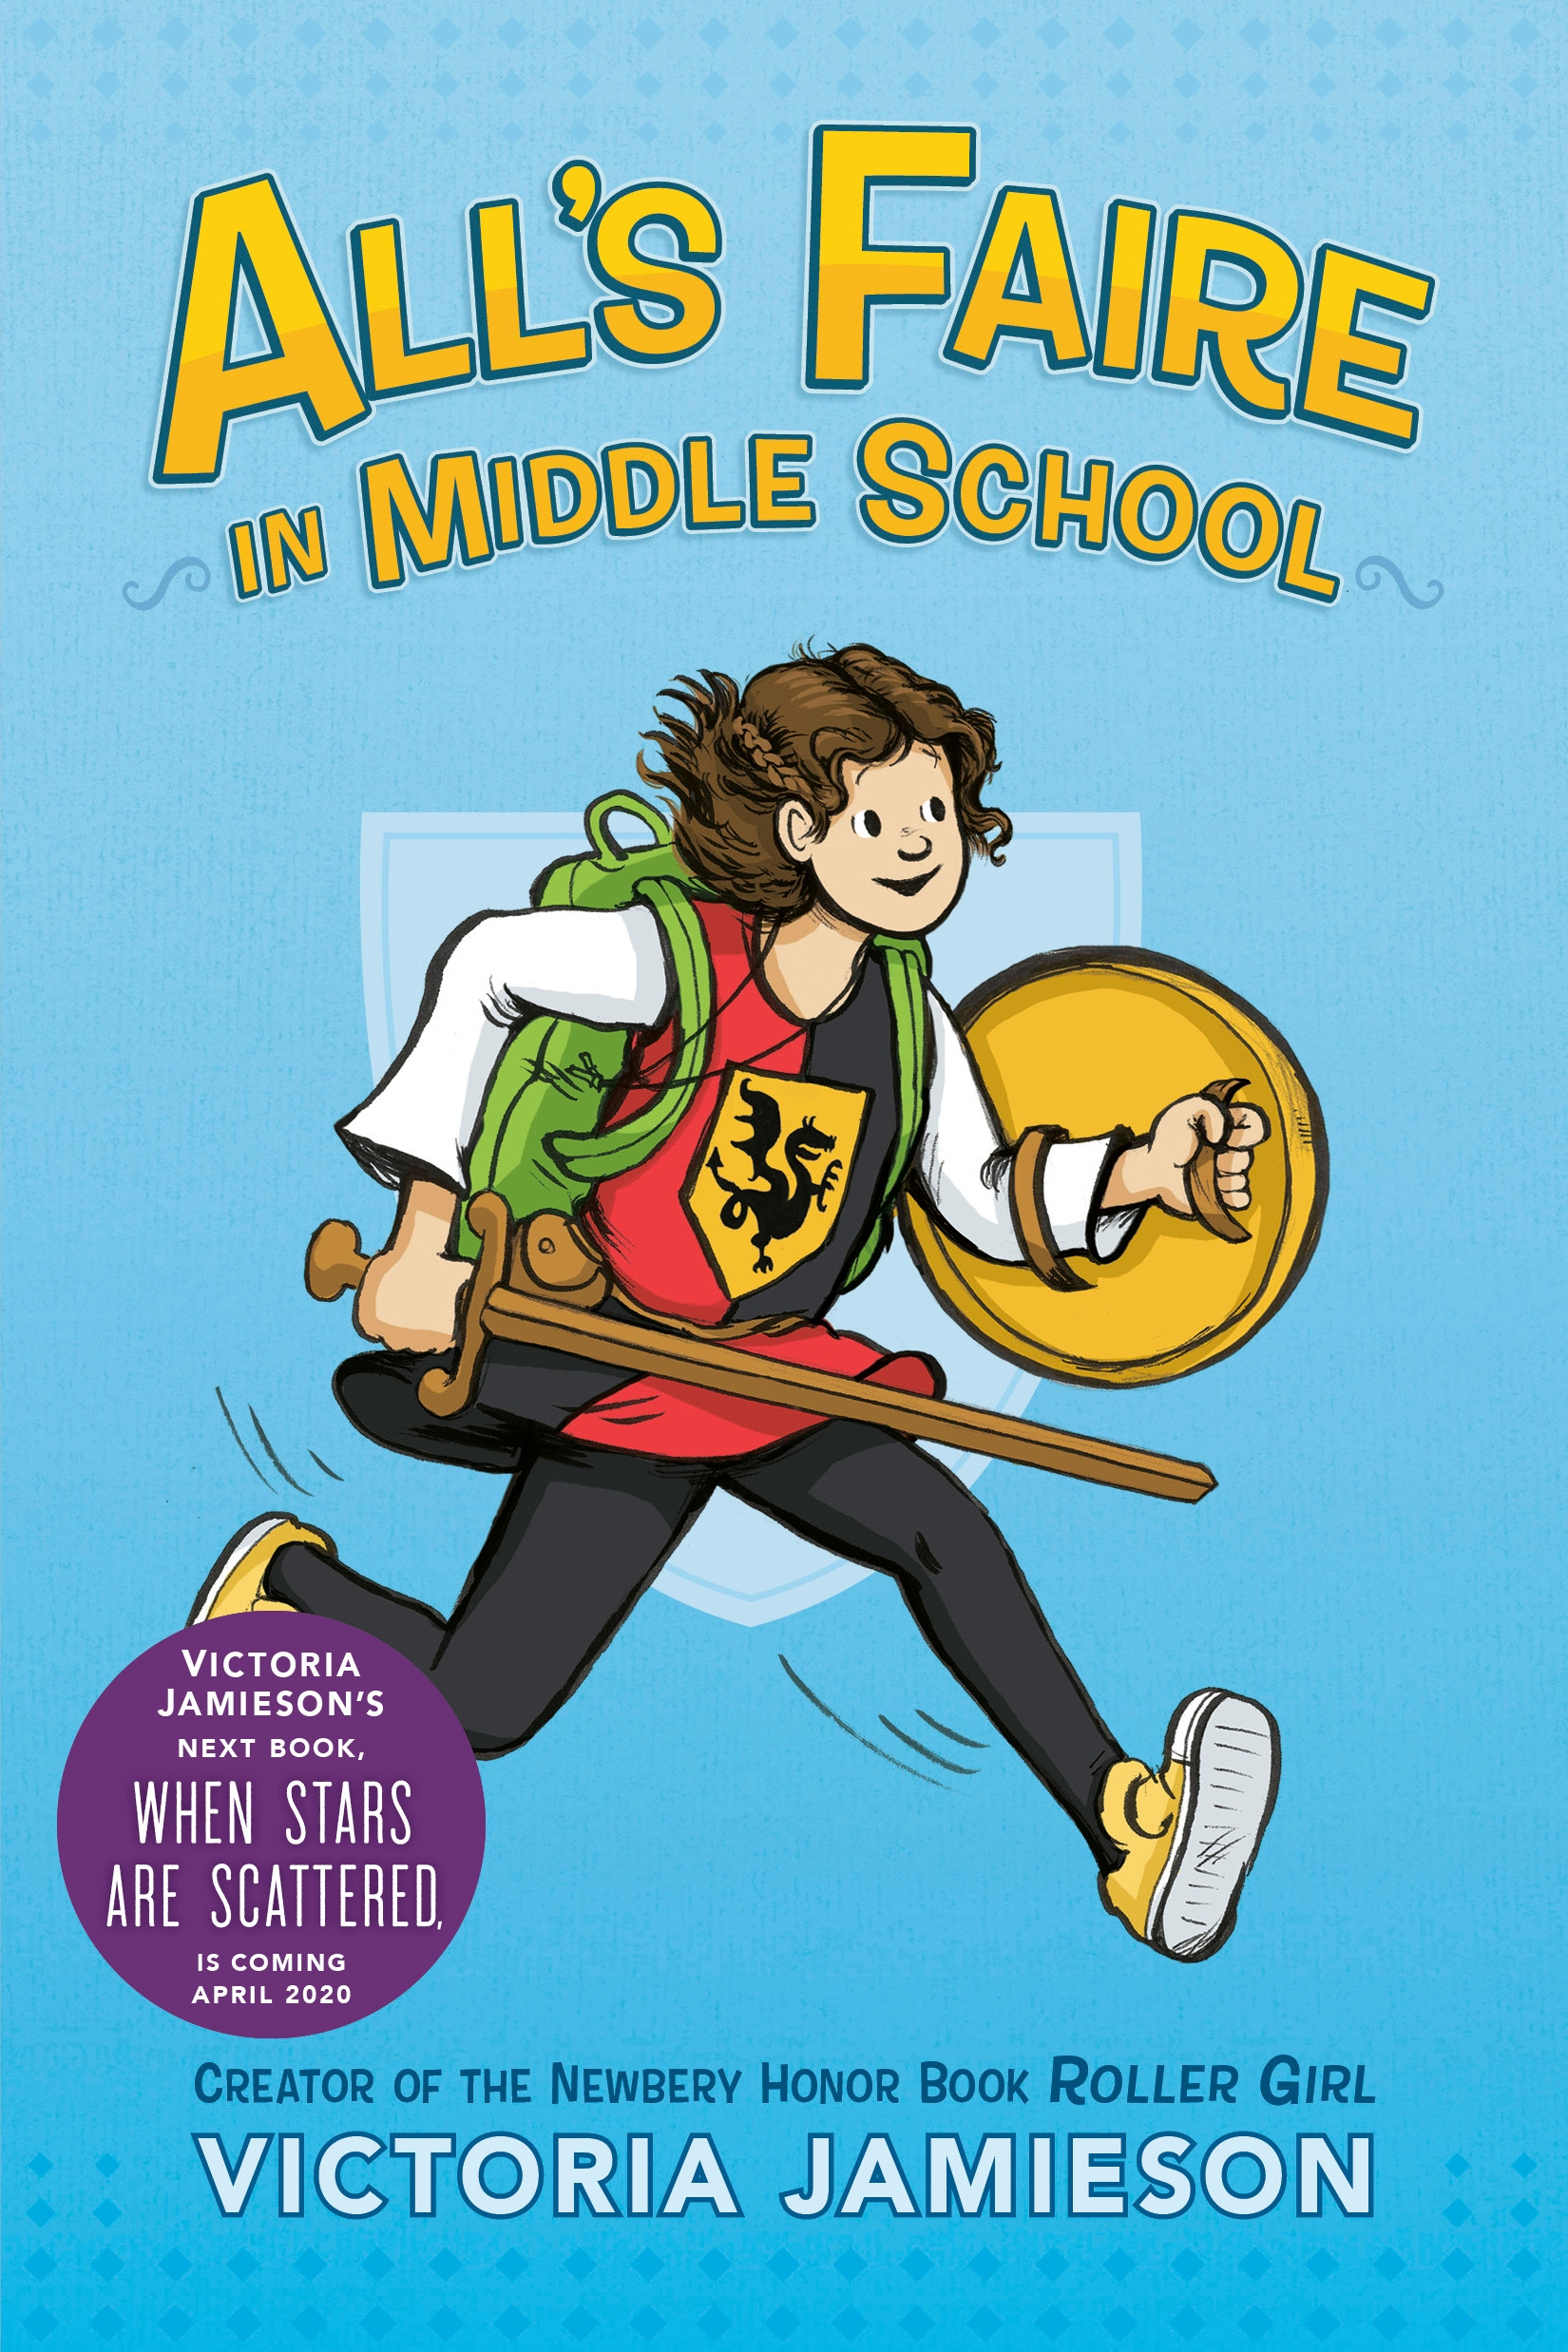 All's Faire in Middle School by Victoria Jamieson, ISBN: 9780525429999